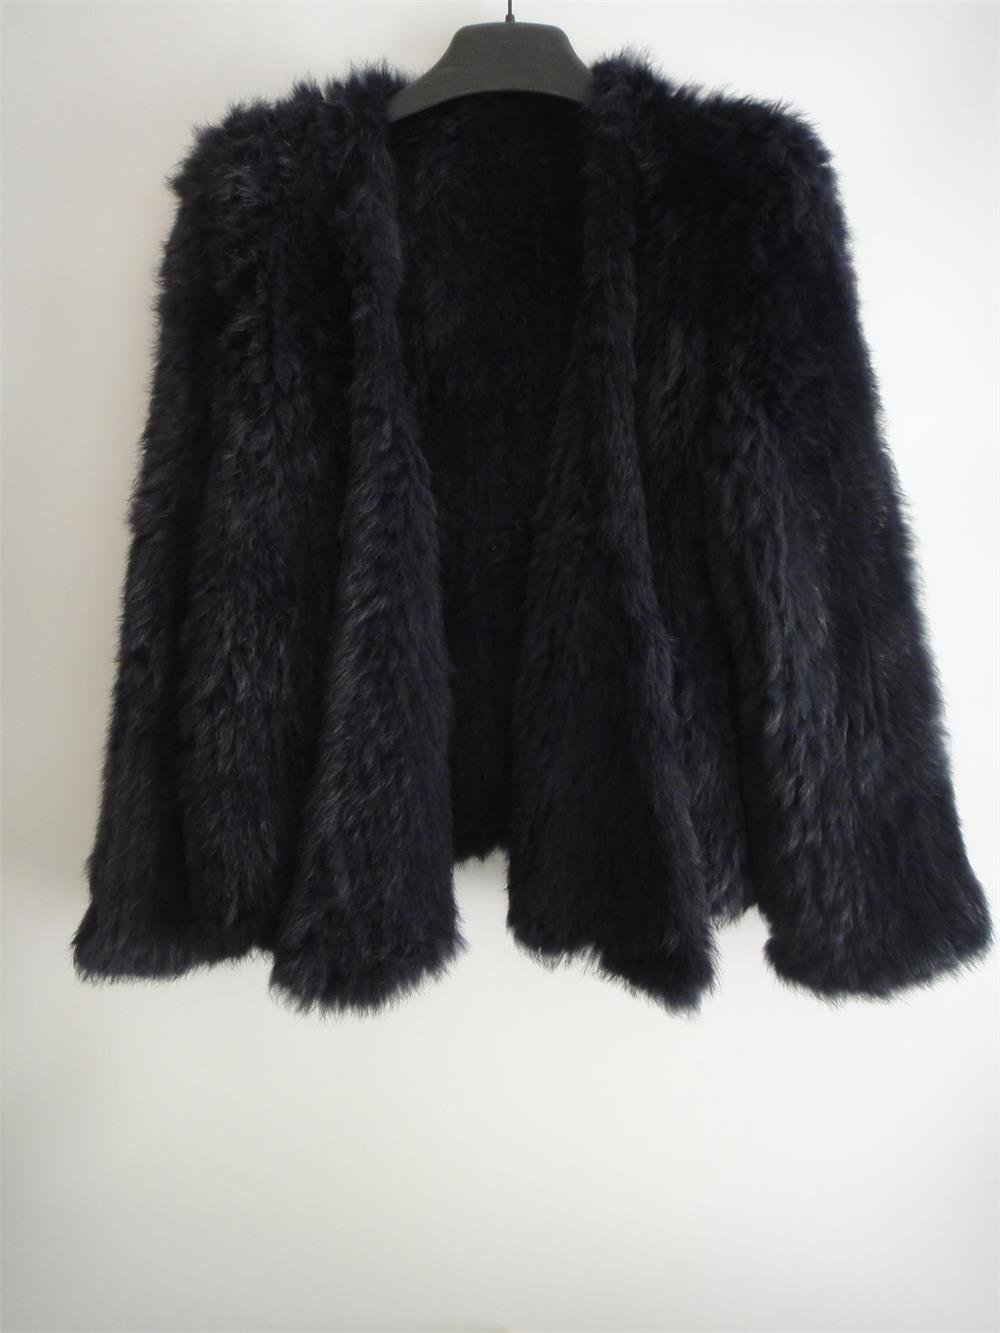 Black/White Crochet Real Rabbit Fur Outwear